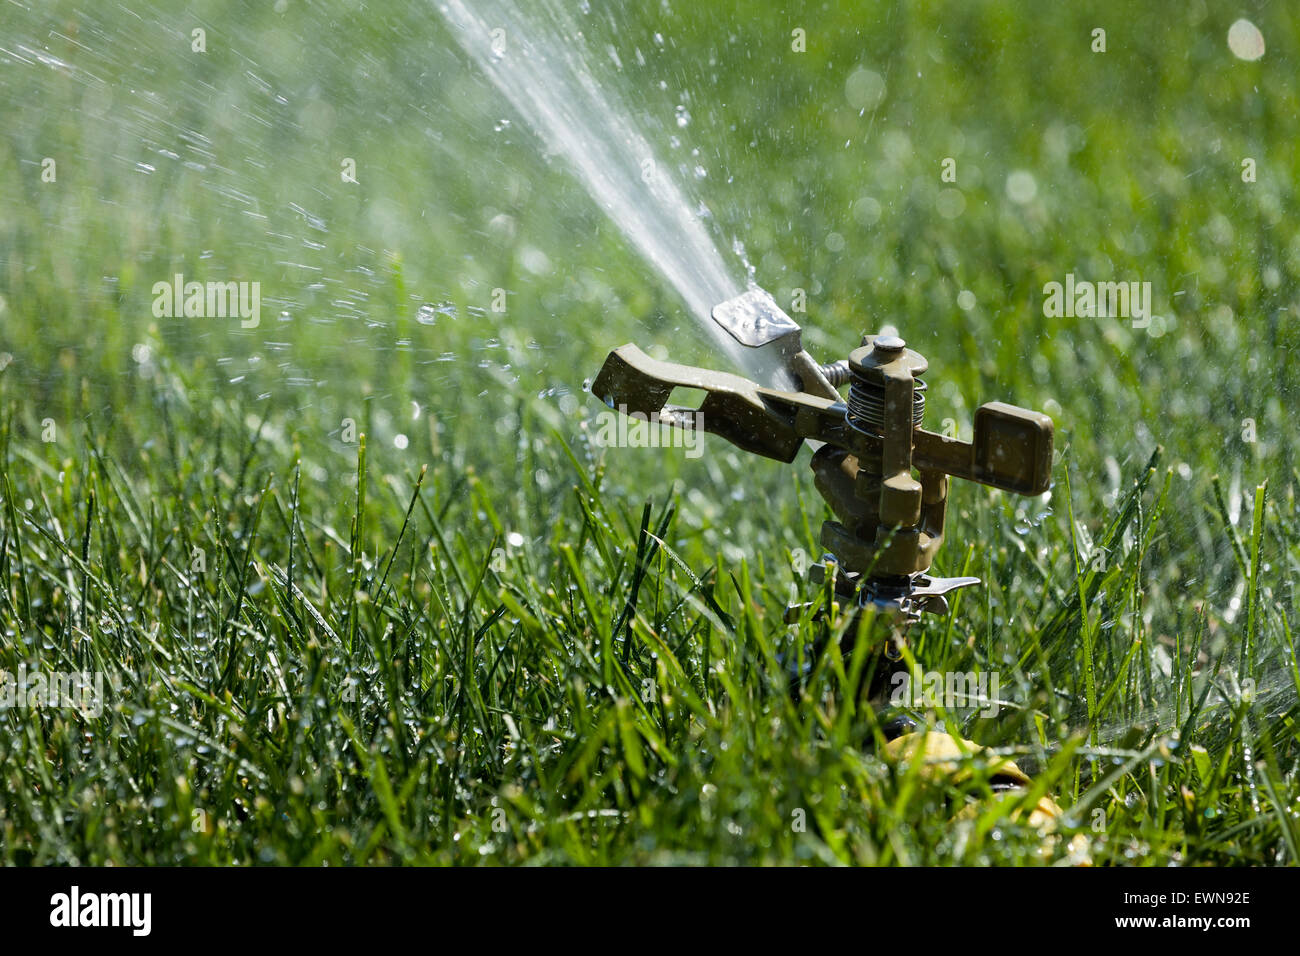 sprinkler stockfotos sprinkler bilder alamy. Black Bedroom Furniture Sets. Home Design Ideas